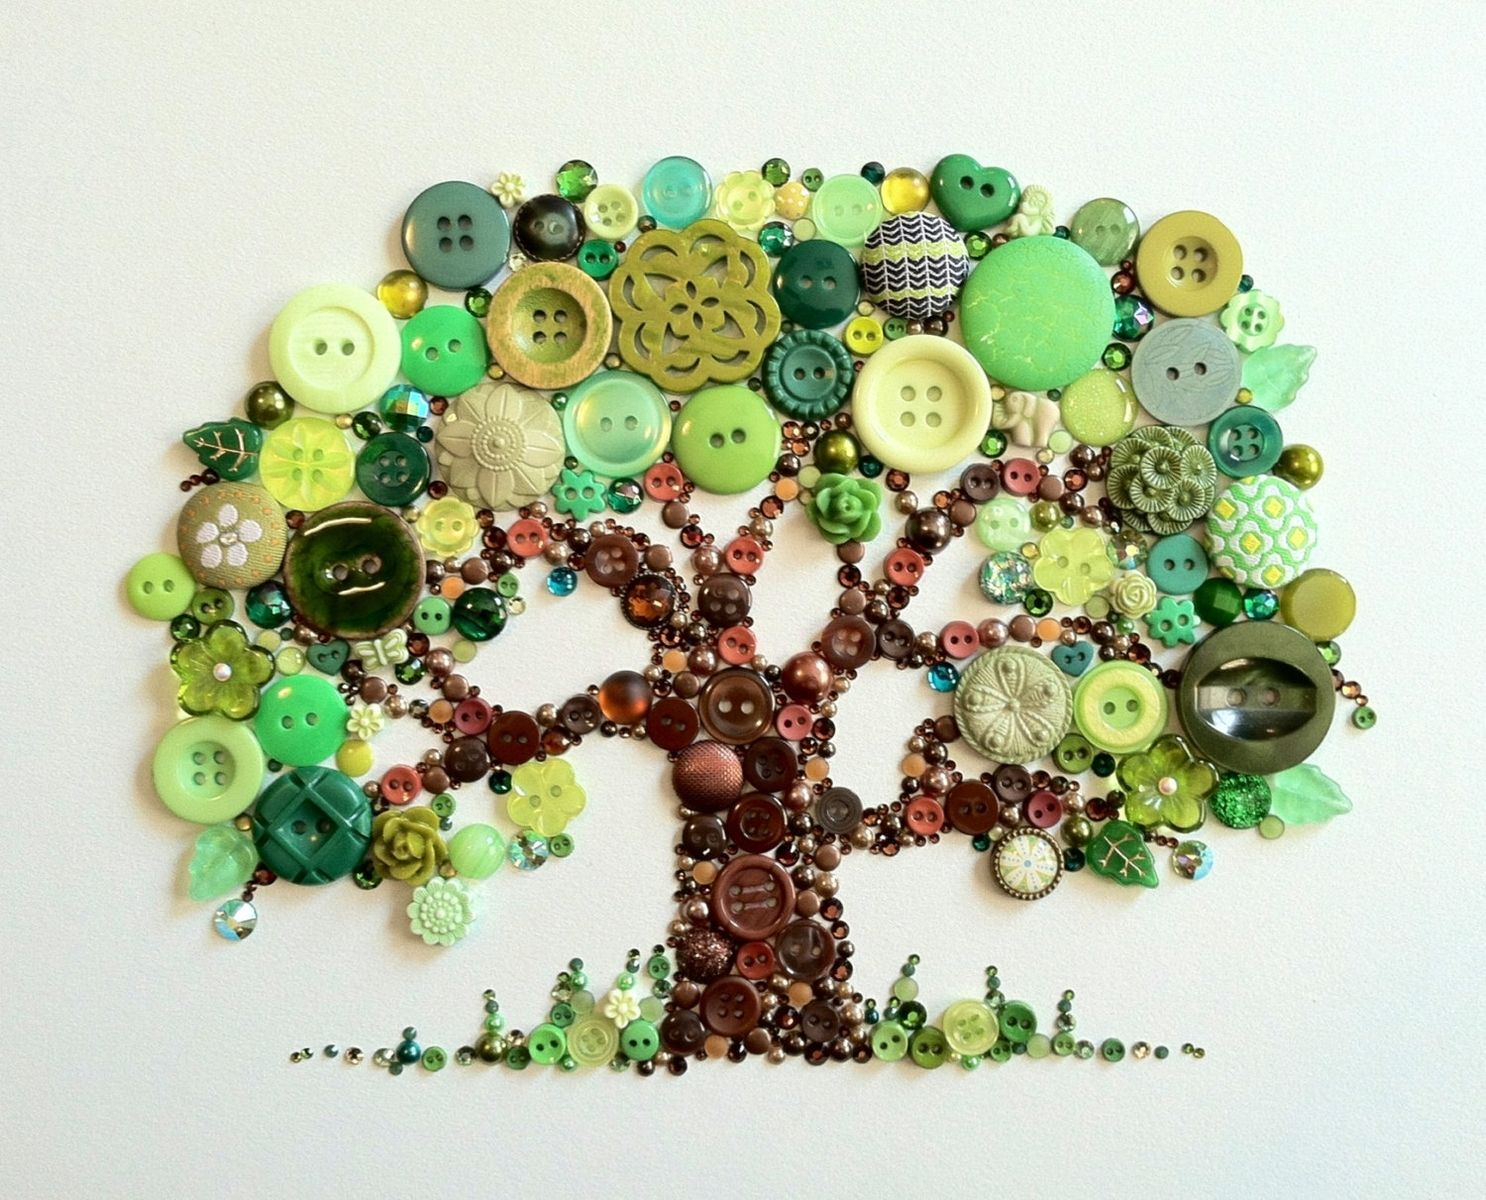 Hand Crafted Tree Of Life Button Art With Swarovski ...